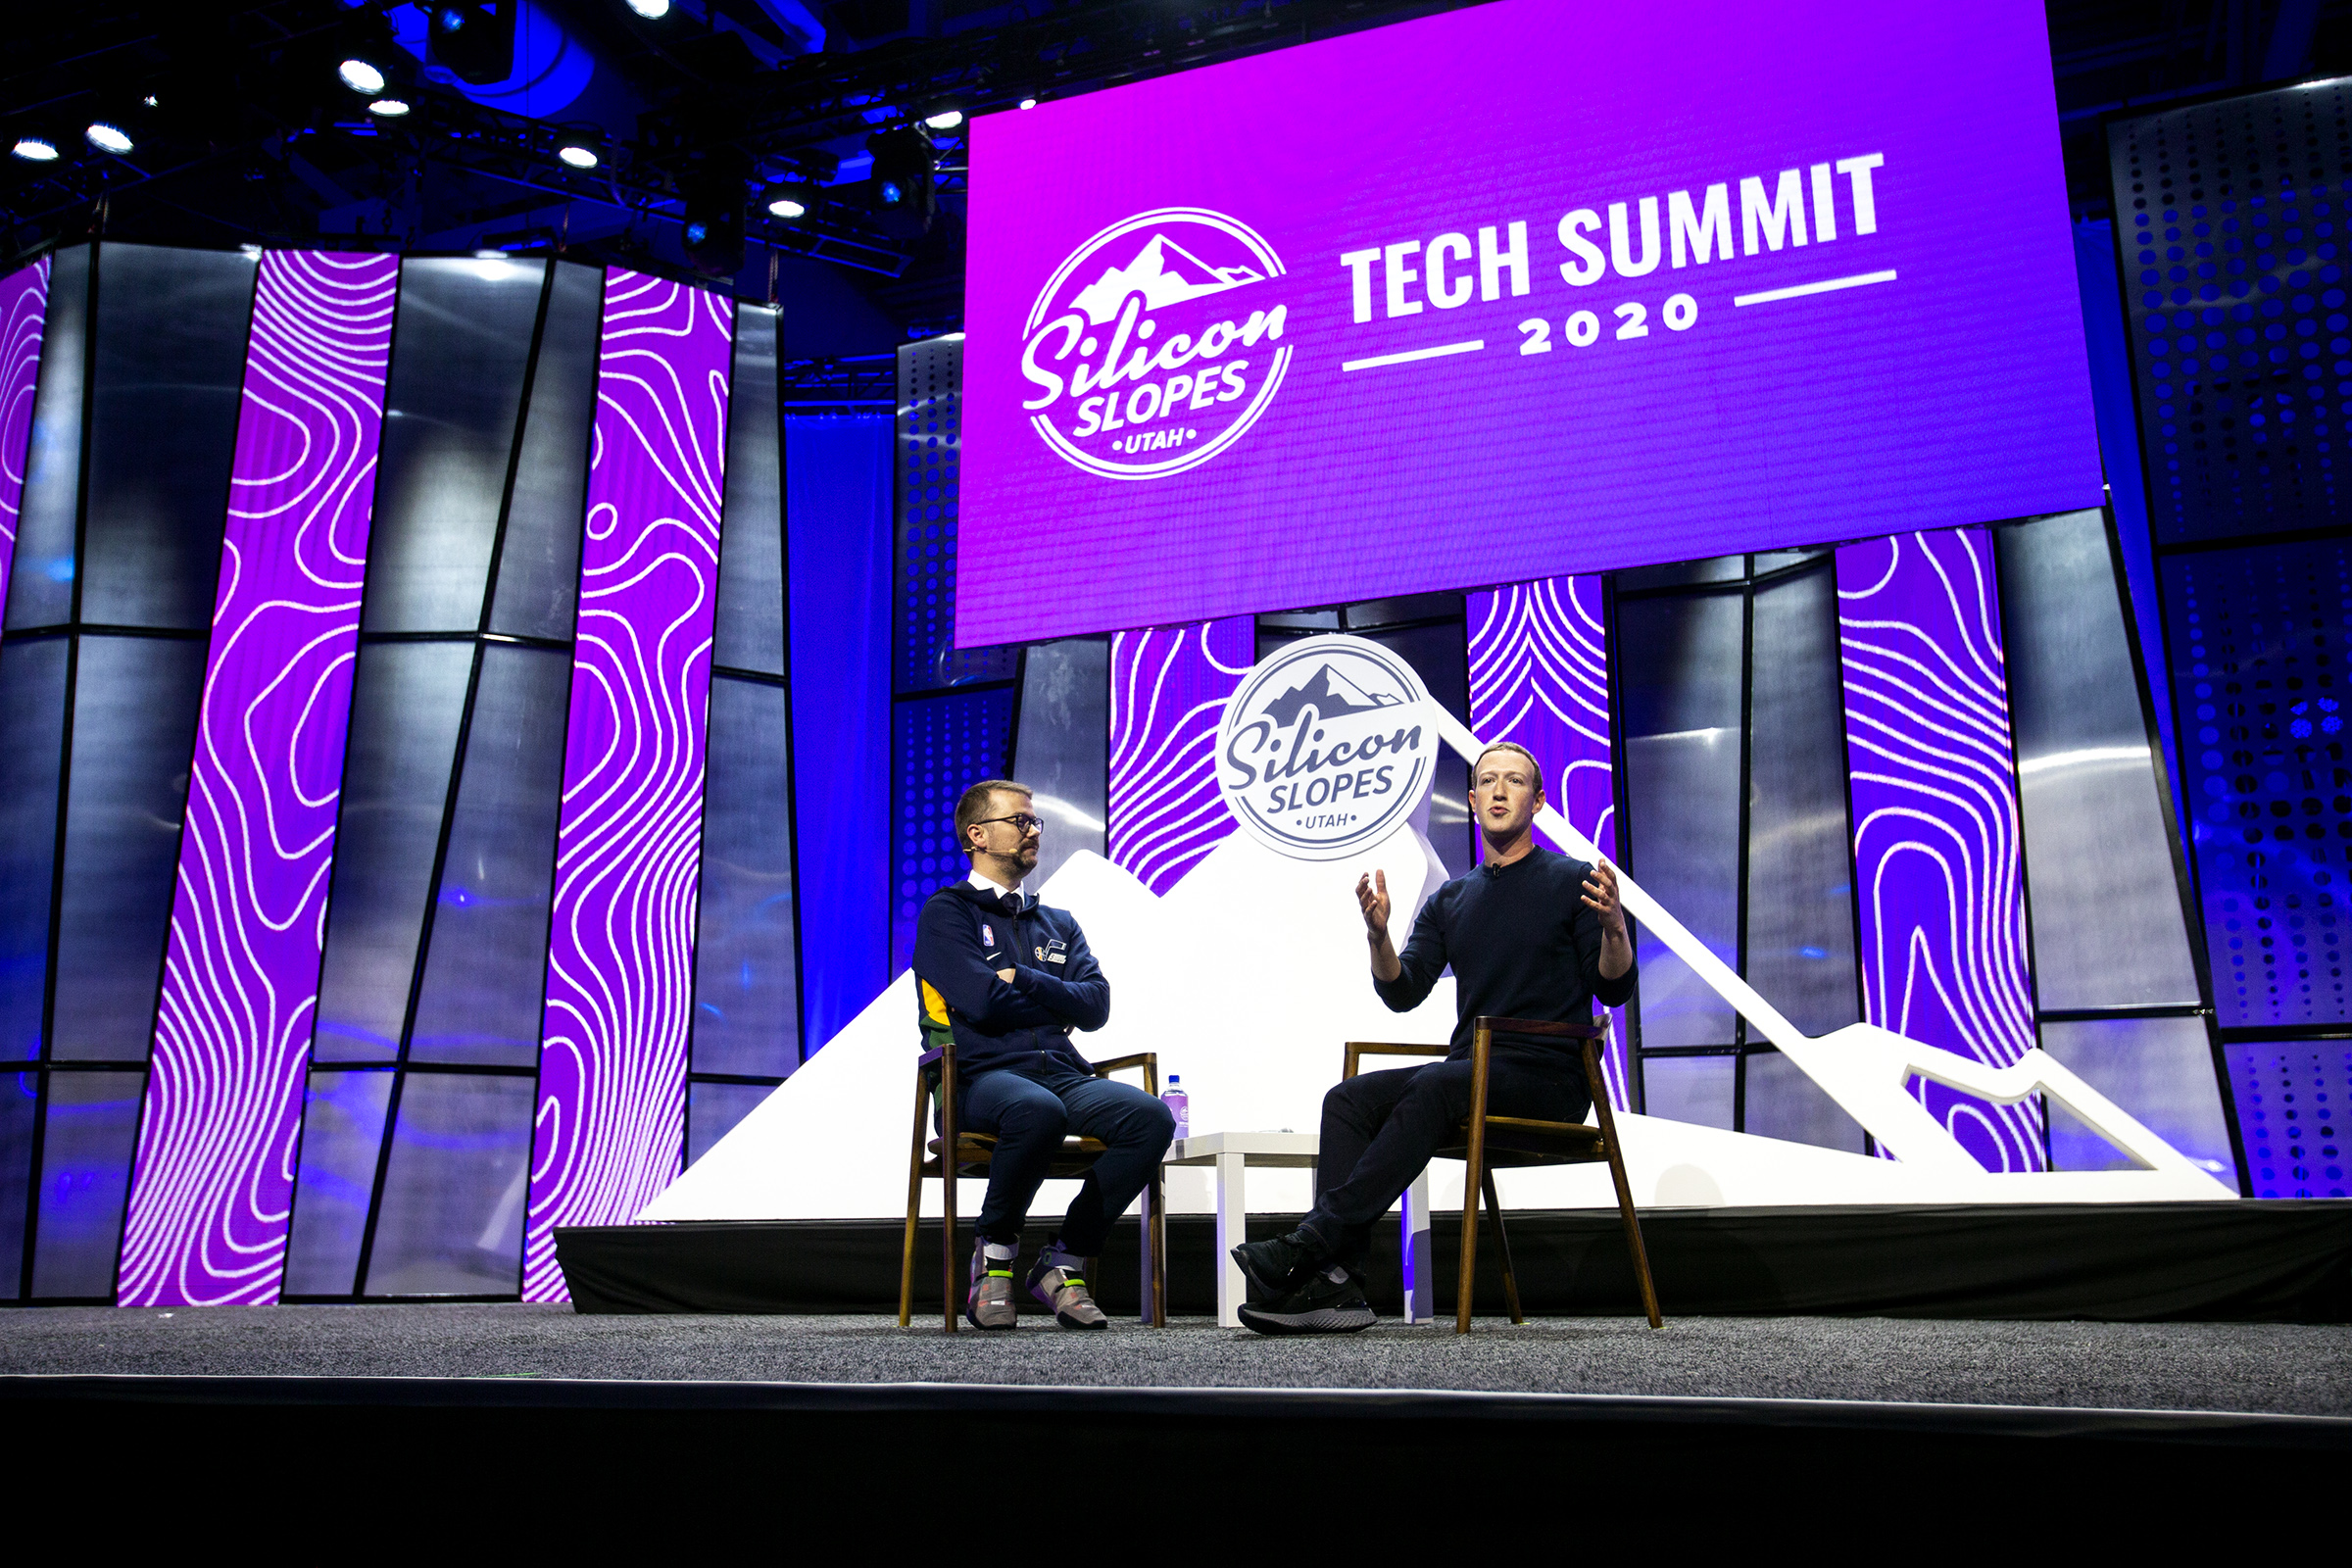 Silicon Slopes Executive Director Clint Betts sits down with Mark Zuckerberg, founder and CEO of Facebook, at the Silicon Slopes Tech Summit at the Salt Palace Convention Center in Salt Lake City on Friday, Jan. 31, 2020.